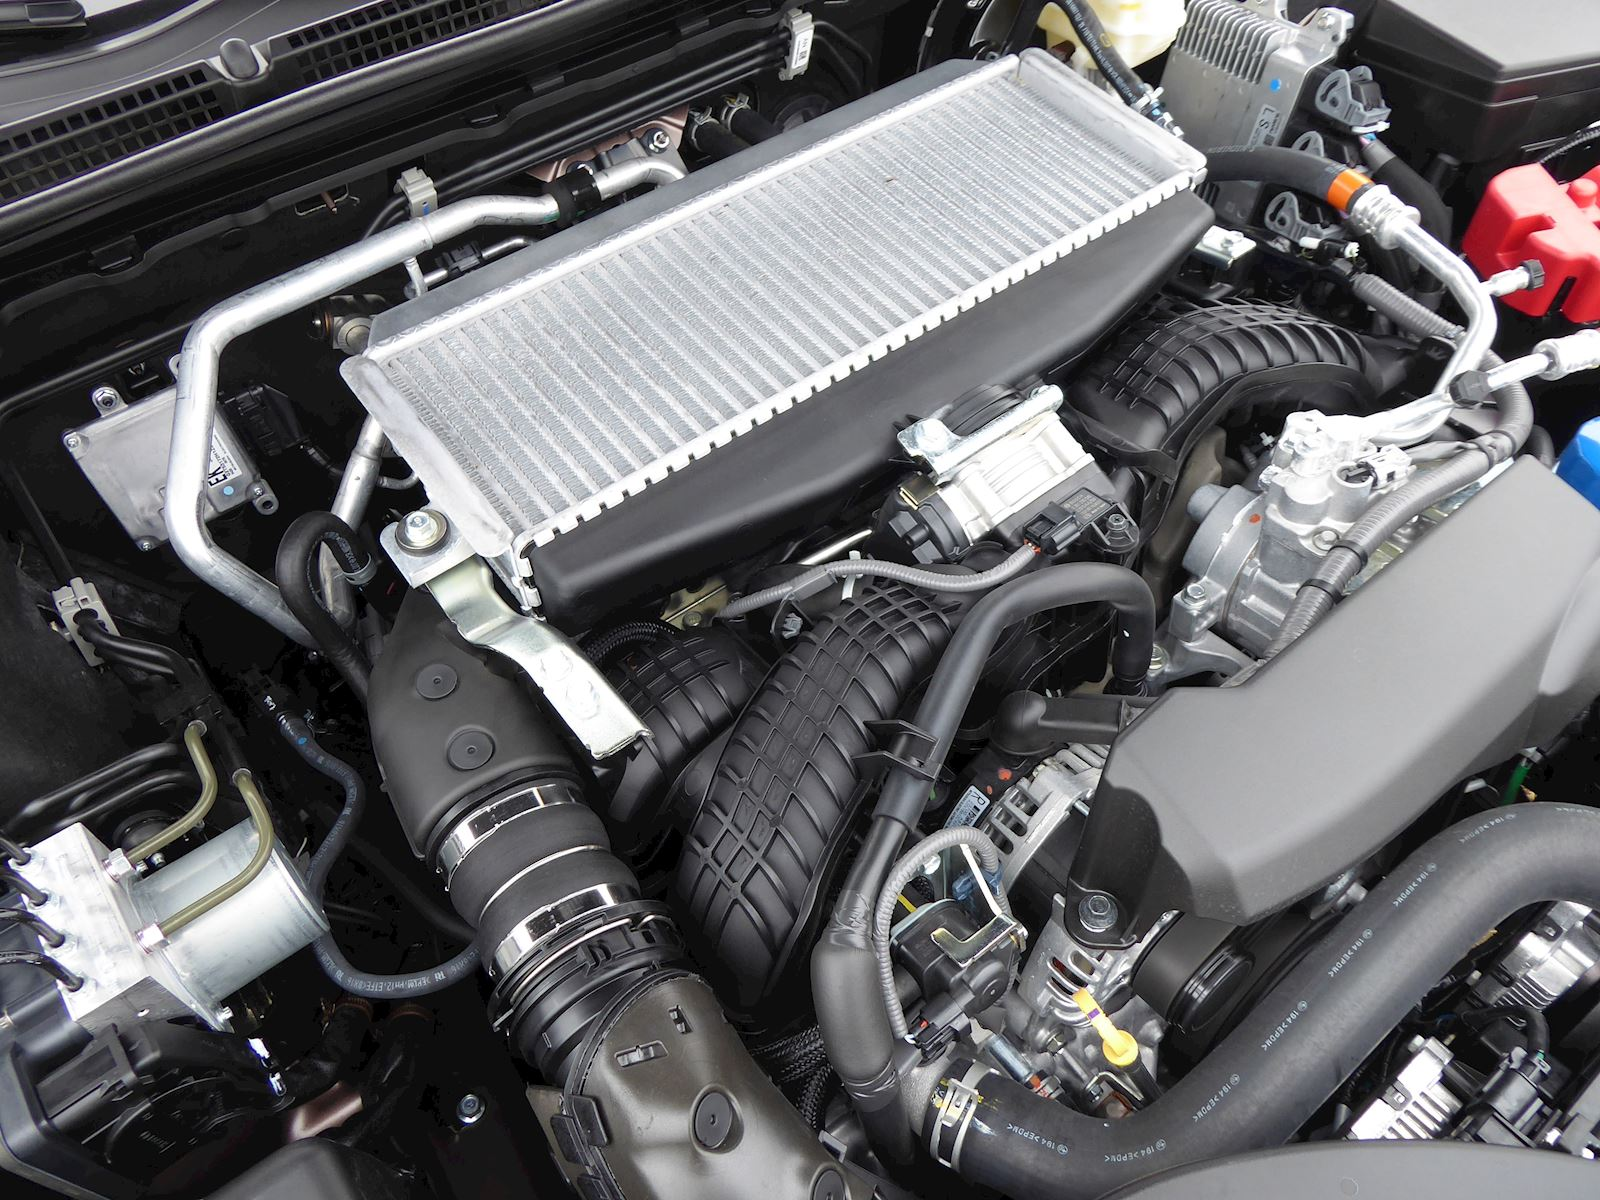 2020 Subaru Outback turbo engine photo